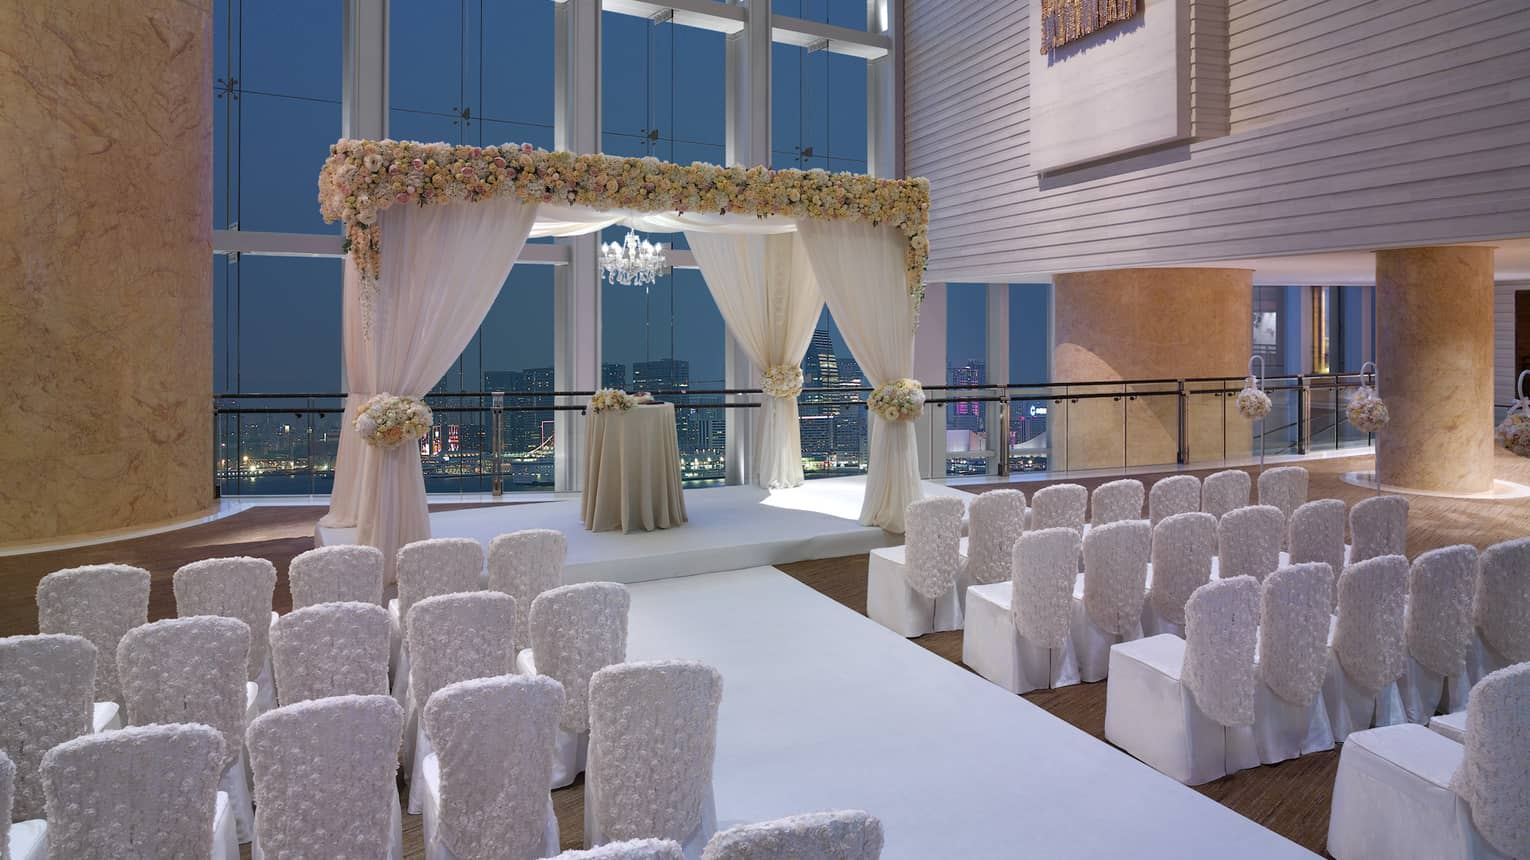 Rows of white chairs face wedding altar under tall loft windows